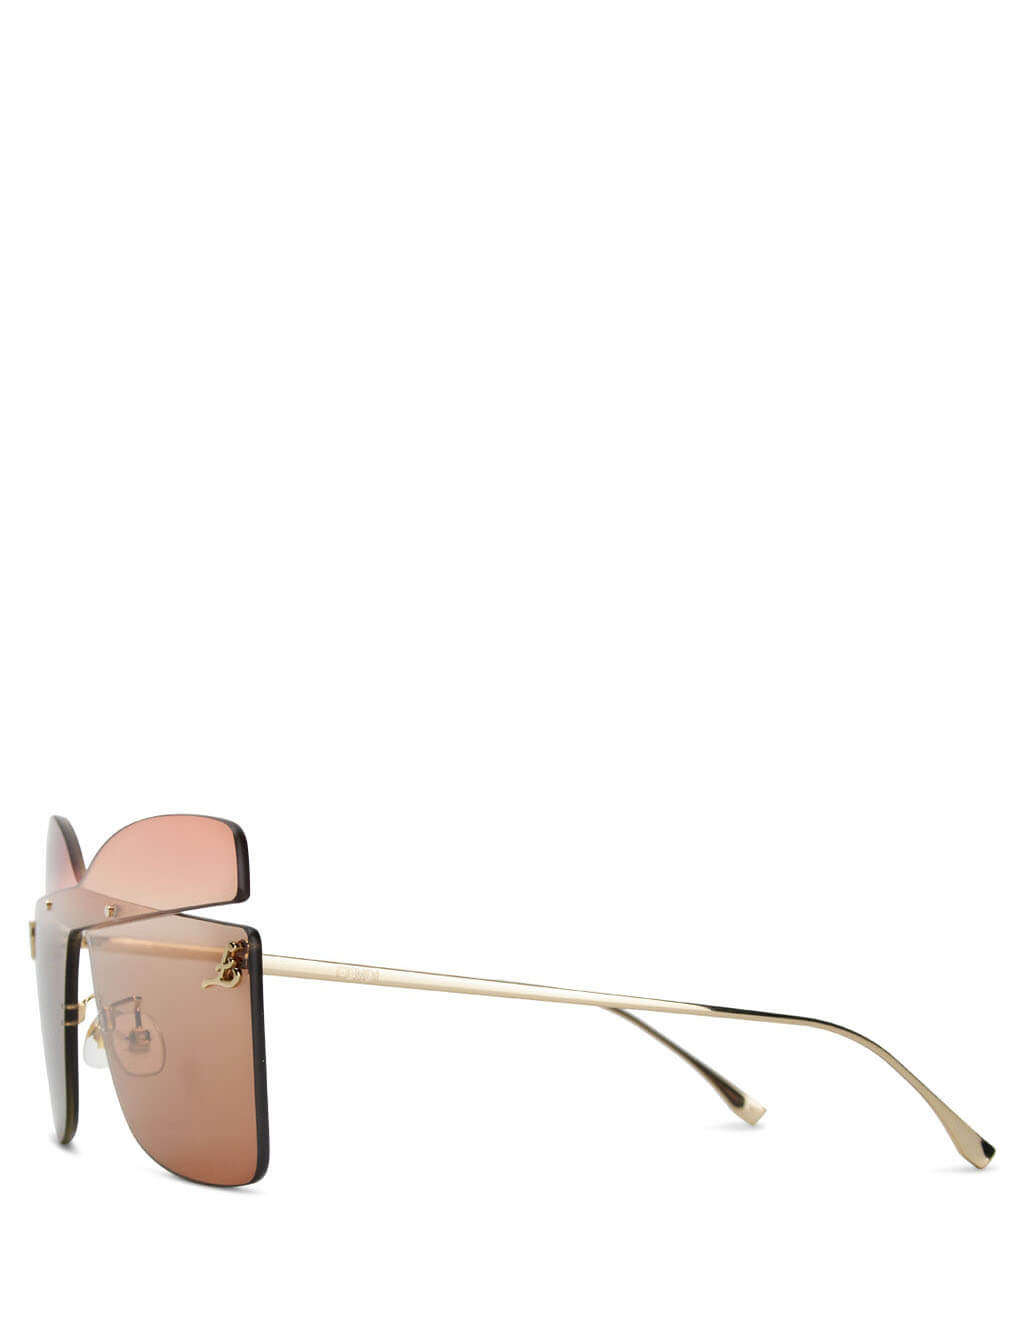 Fendi Eyewear Women's Red, Peach Pink and Brown Karligraphy Sunglasses FF 0399/S G63-HA